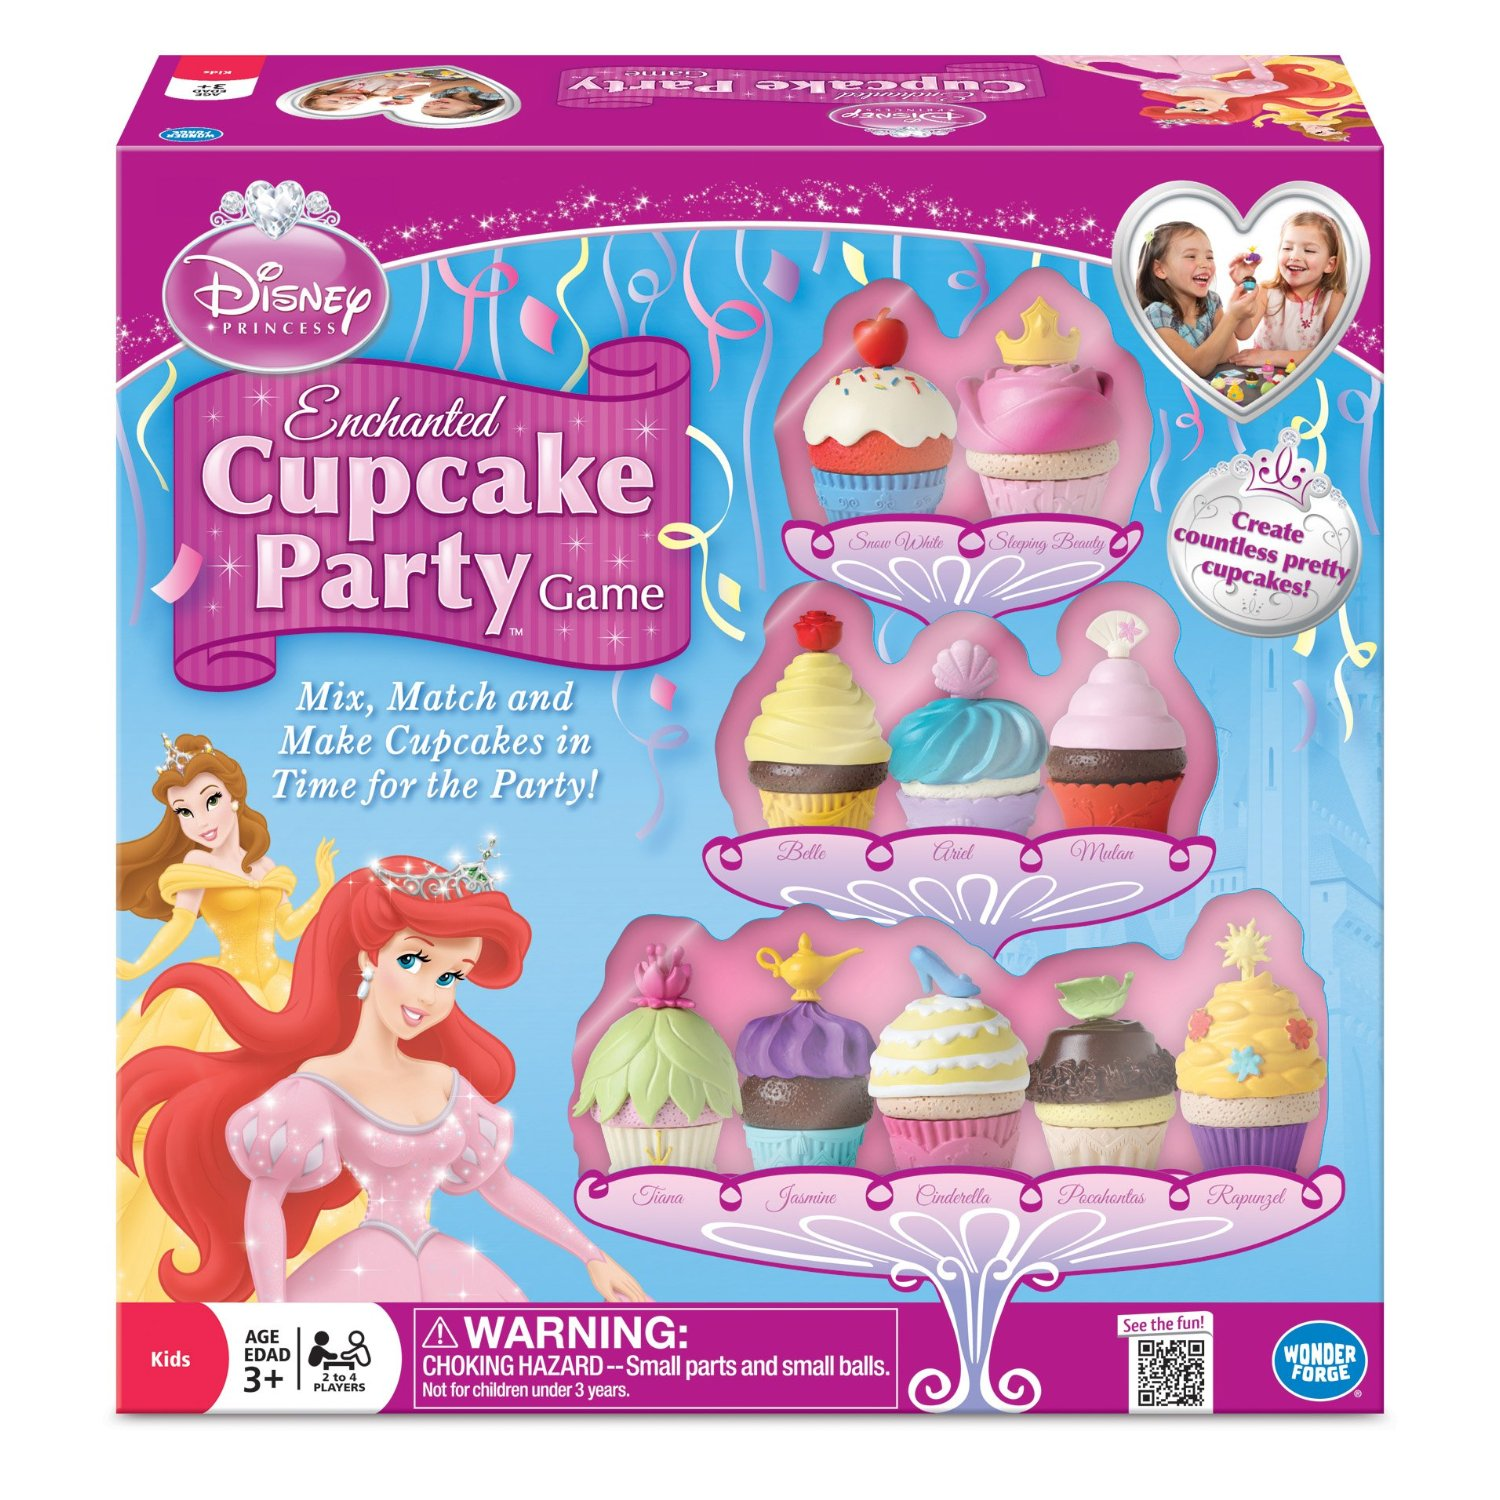 Disney Princess Enchanted Cupcake Party Game Review Home Ever After